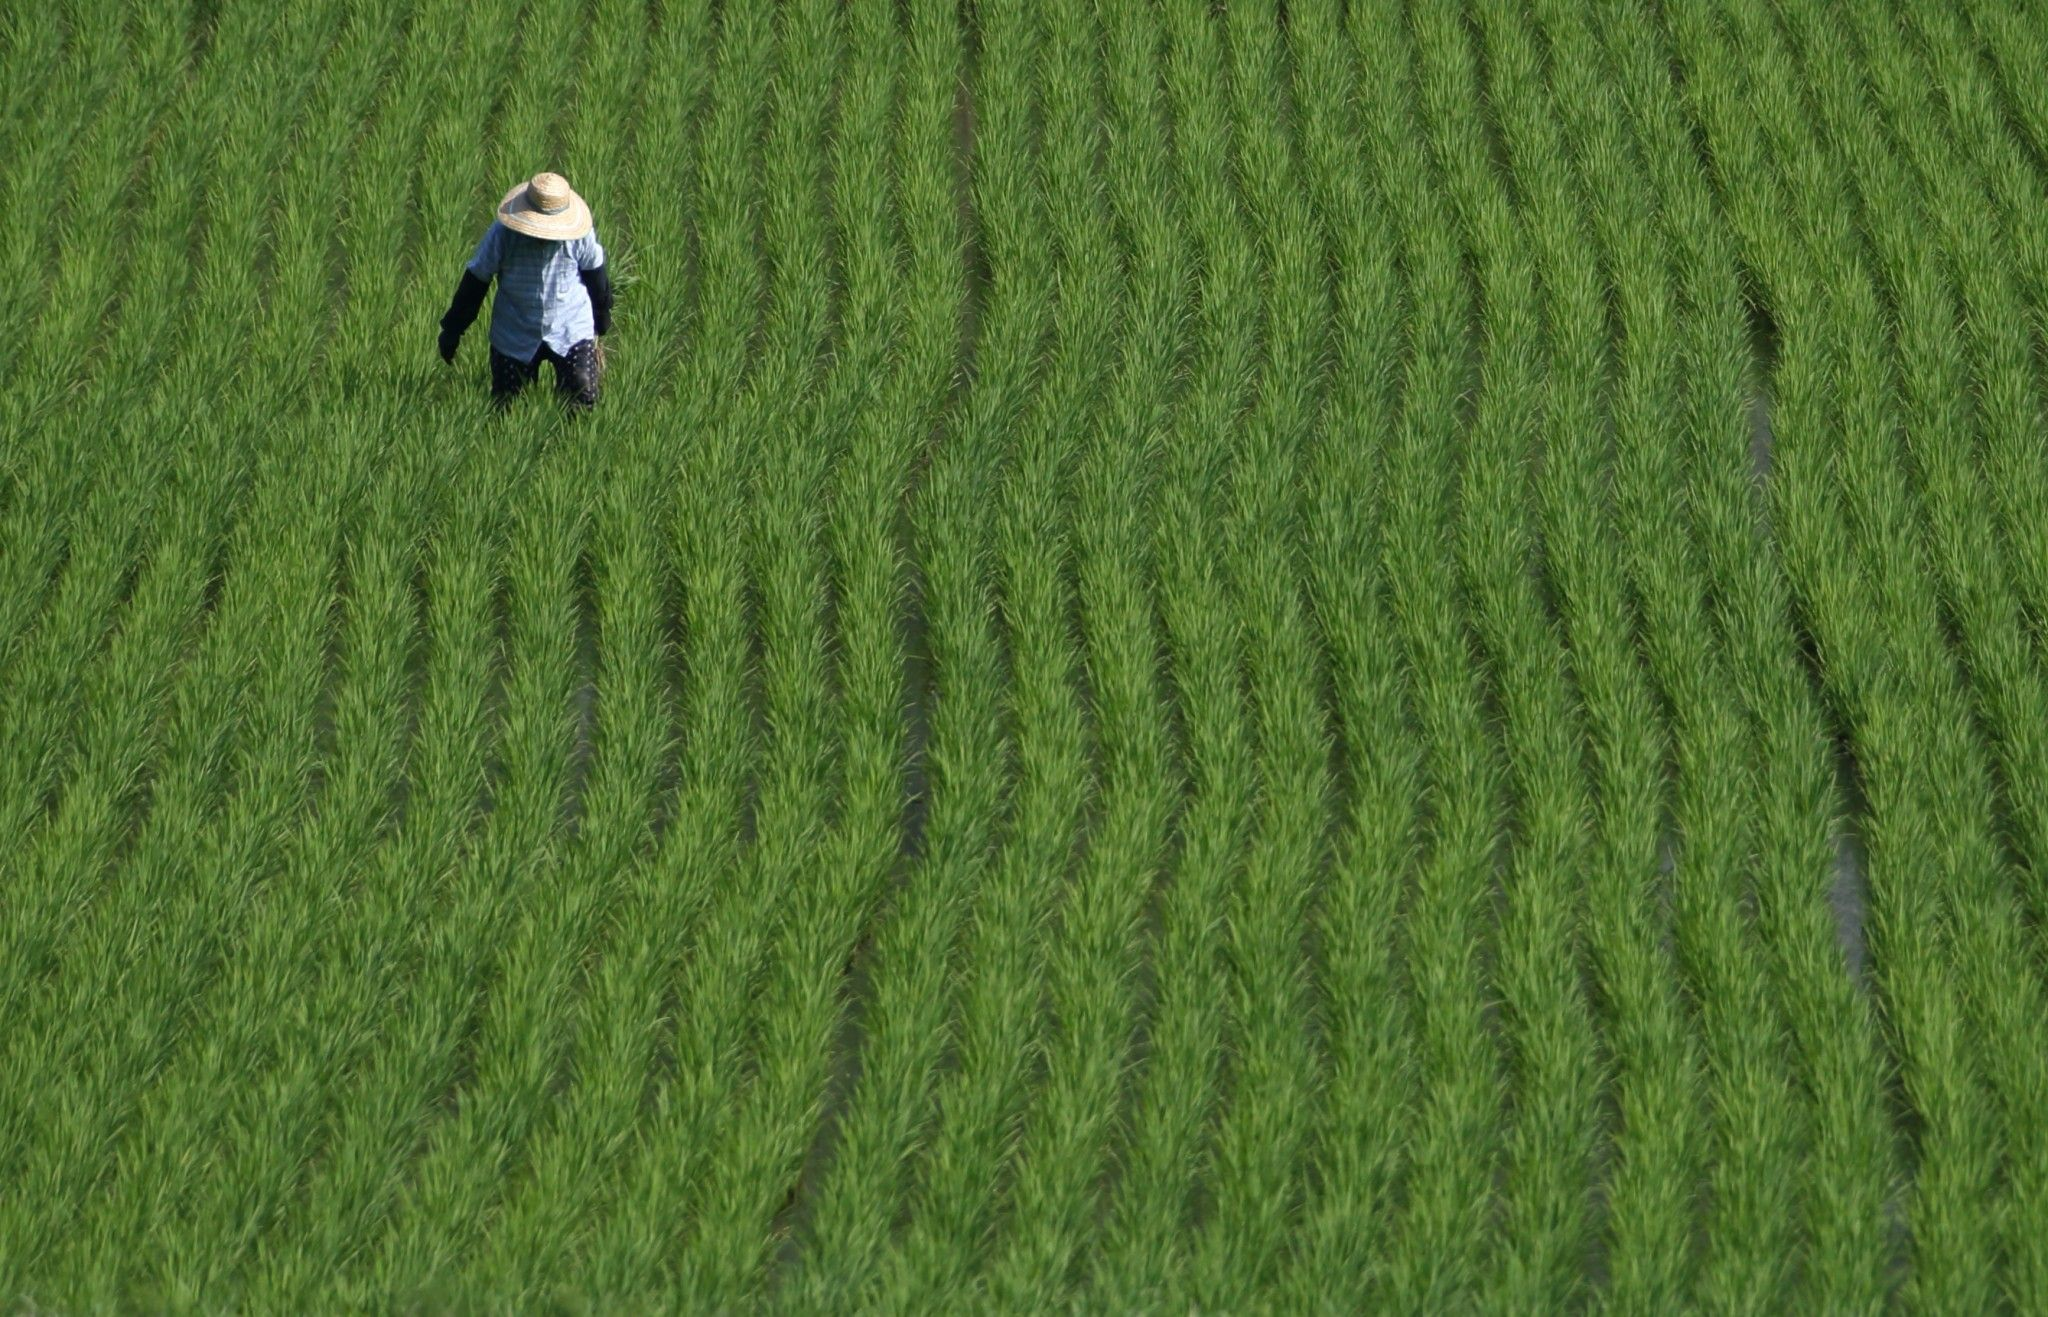 Japan S Farmers Face A Crisis Reform Or Die Out Literally Ap